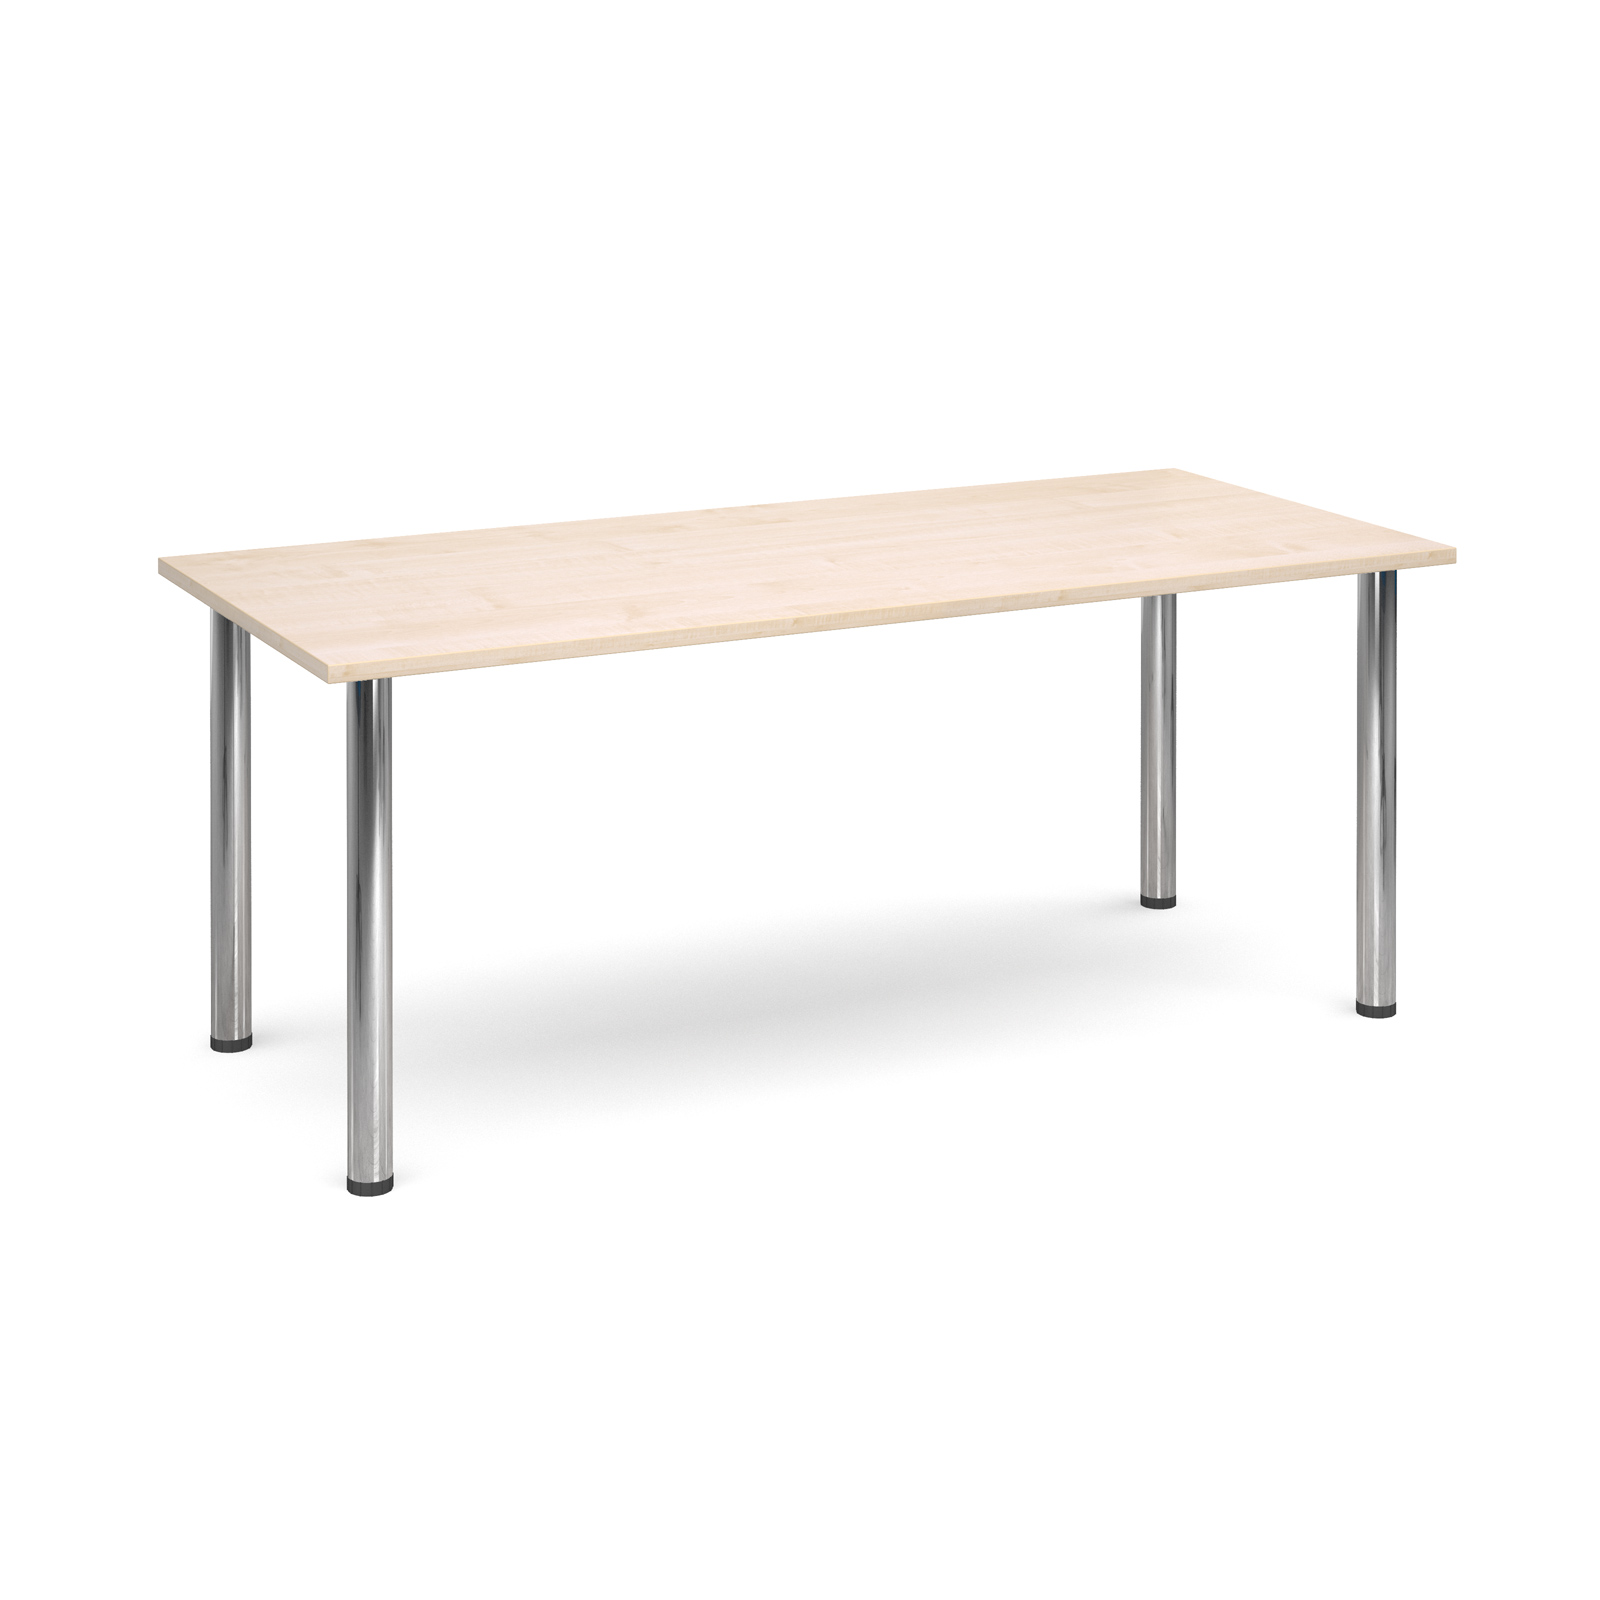 Rectangular deluxe chrome radial leg table 1800mm x 800mm - maple